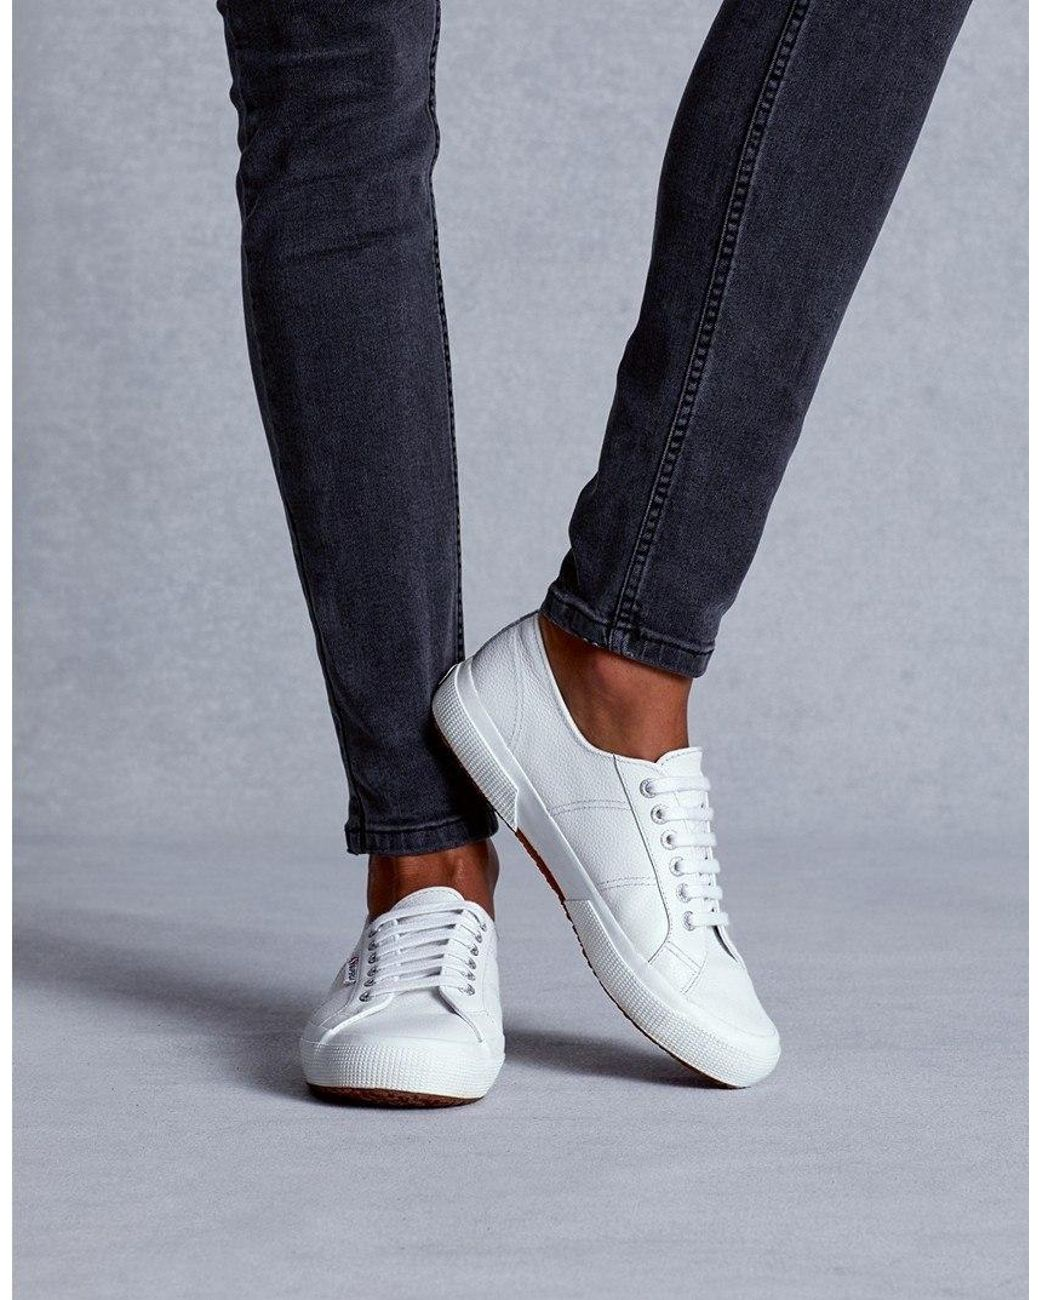 Superga Leather Sneakers in White